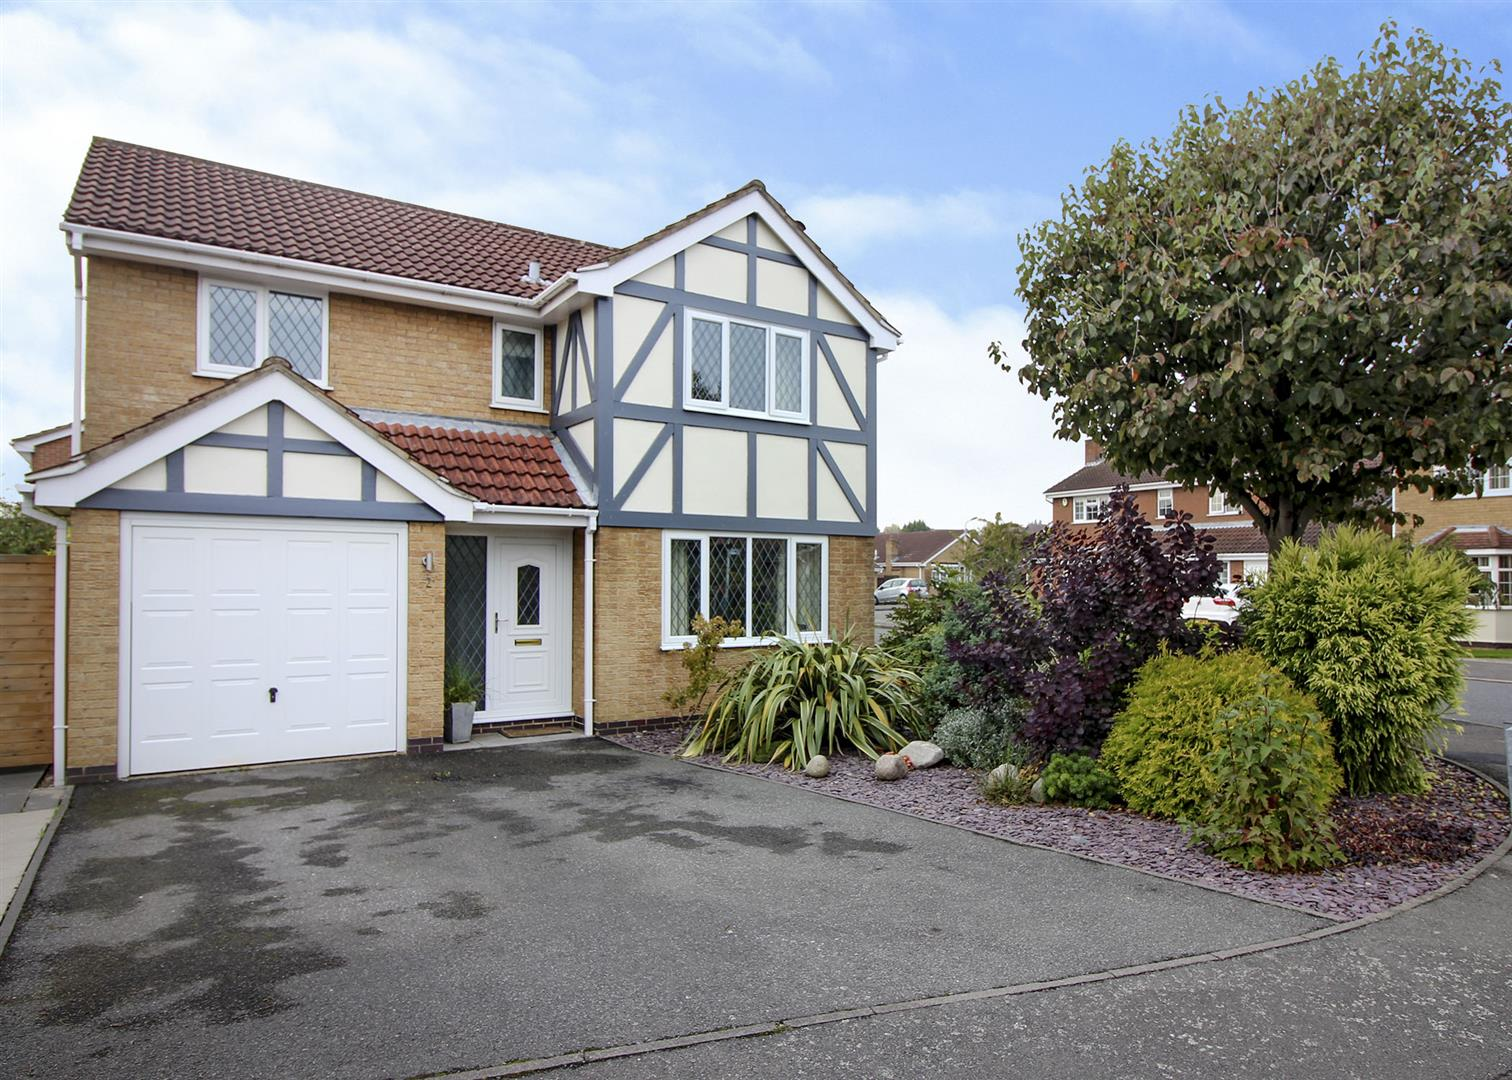 4 Bedrooms Detached House for sale in Salcey Drive, Trowell